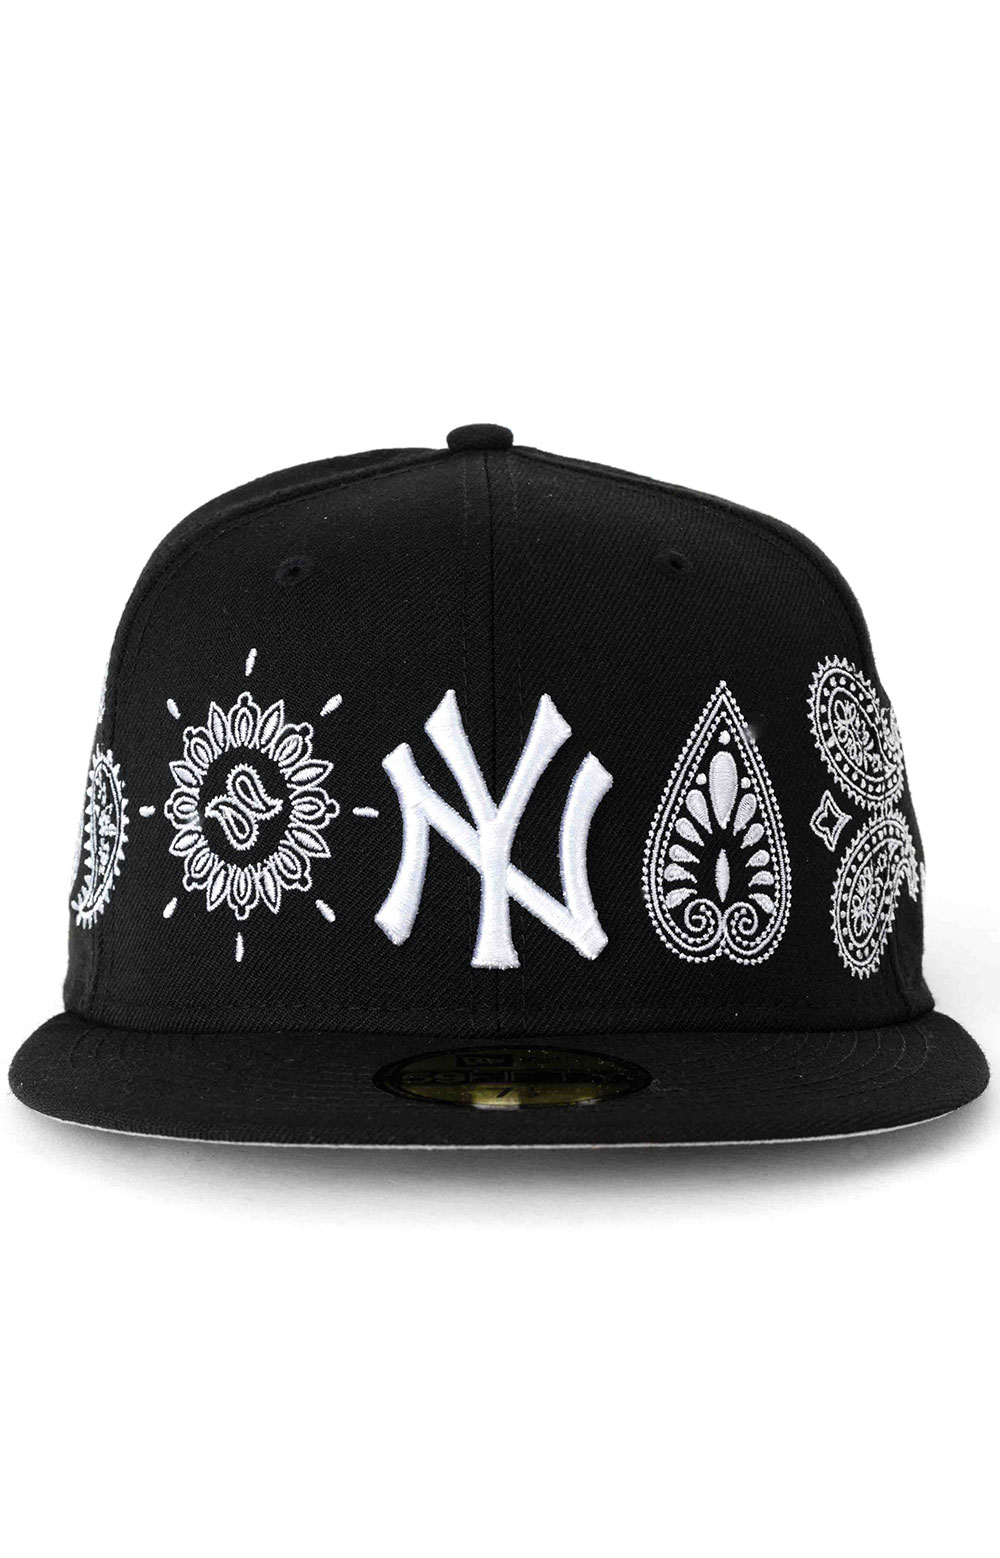 59Fifty New York Yankees Paisley Elements Fitted Hat - Black  2